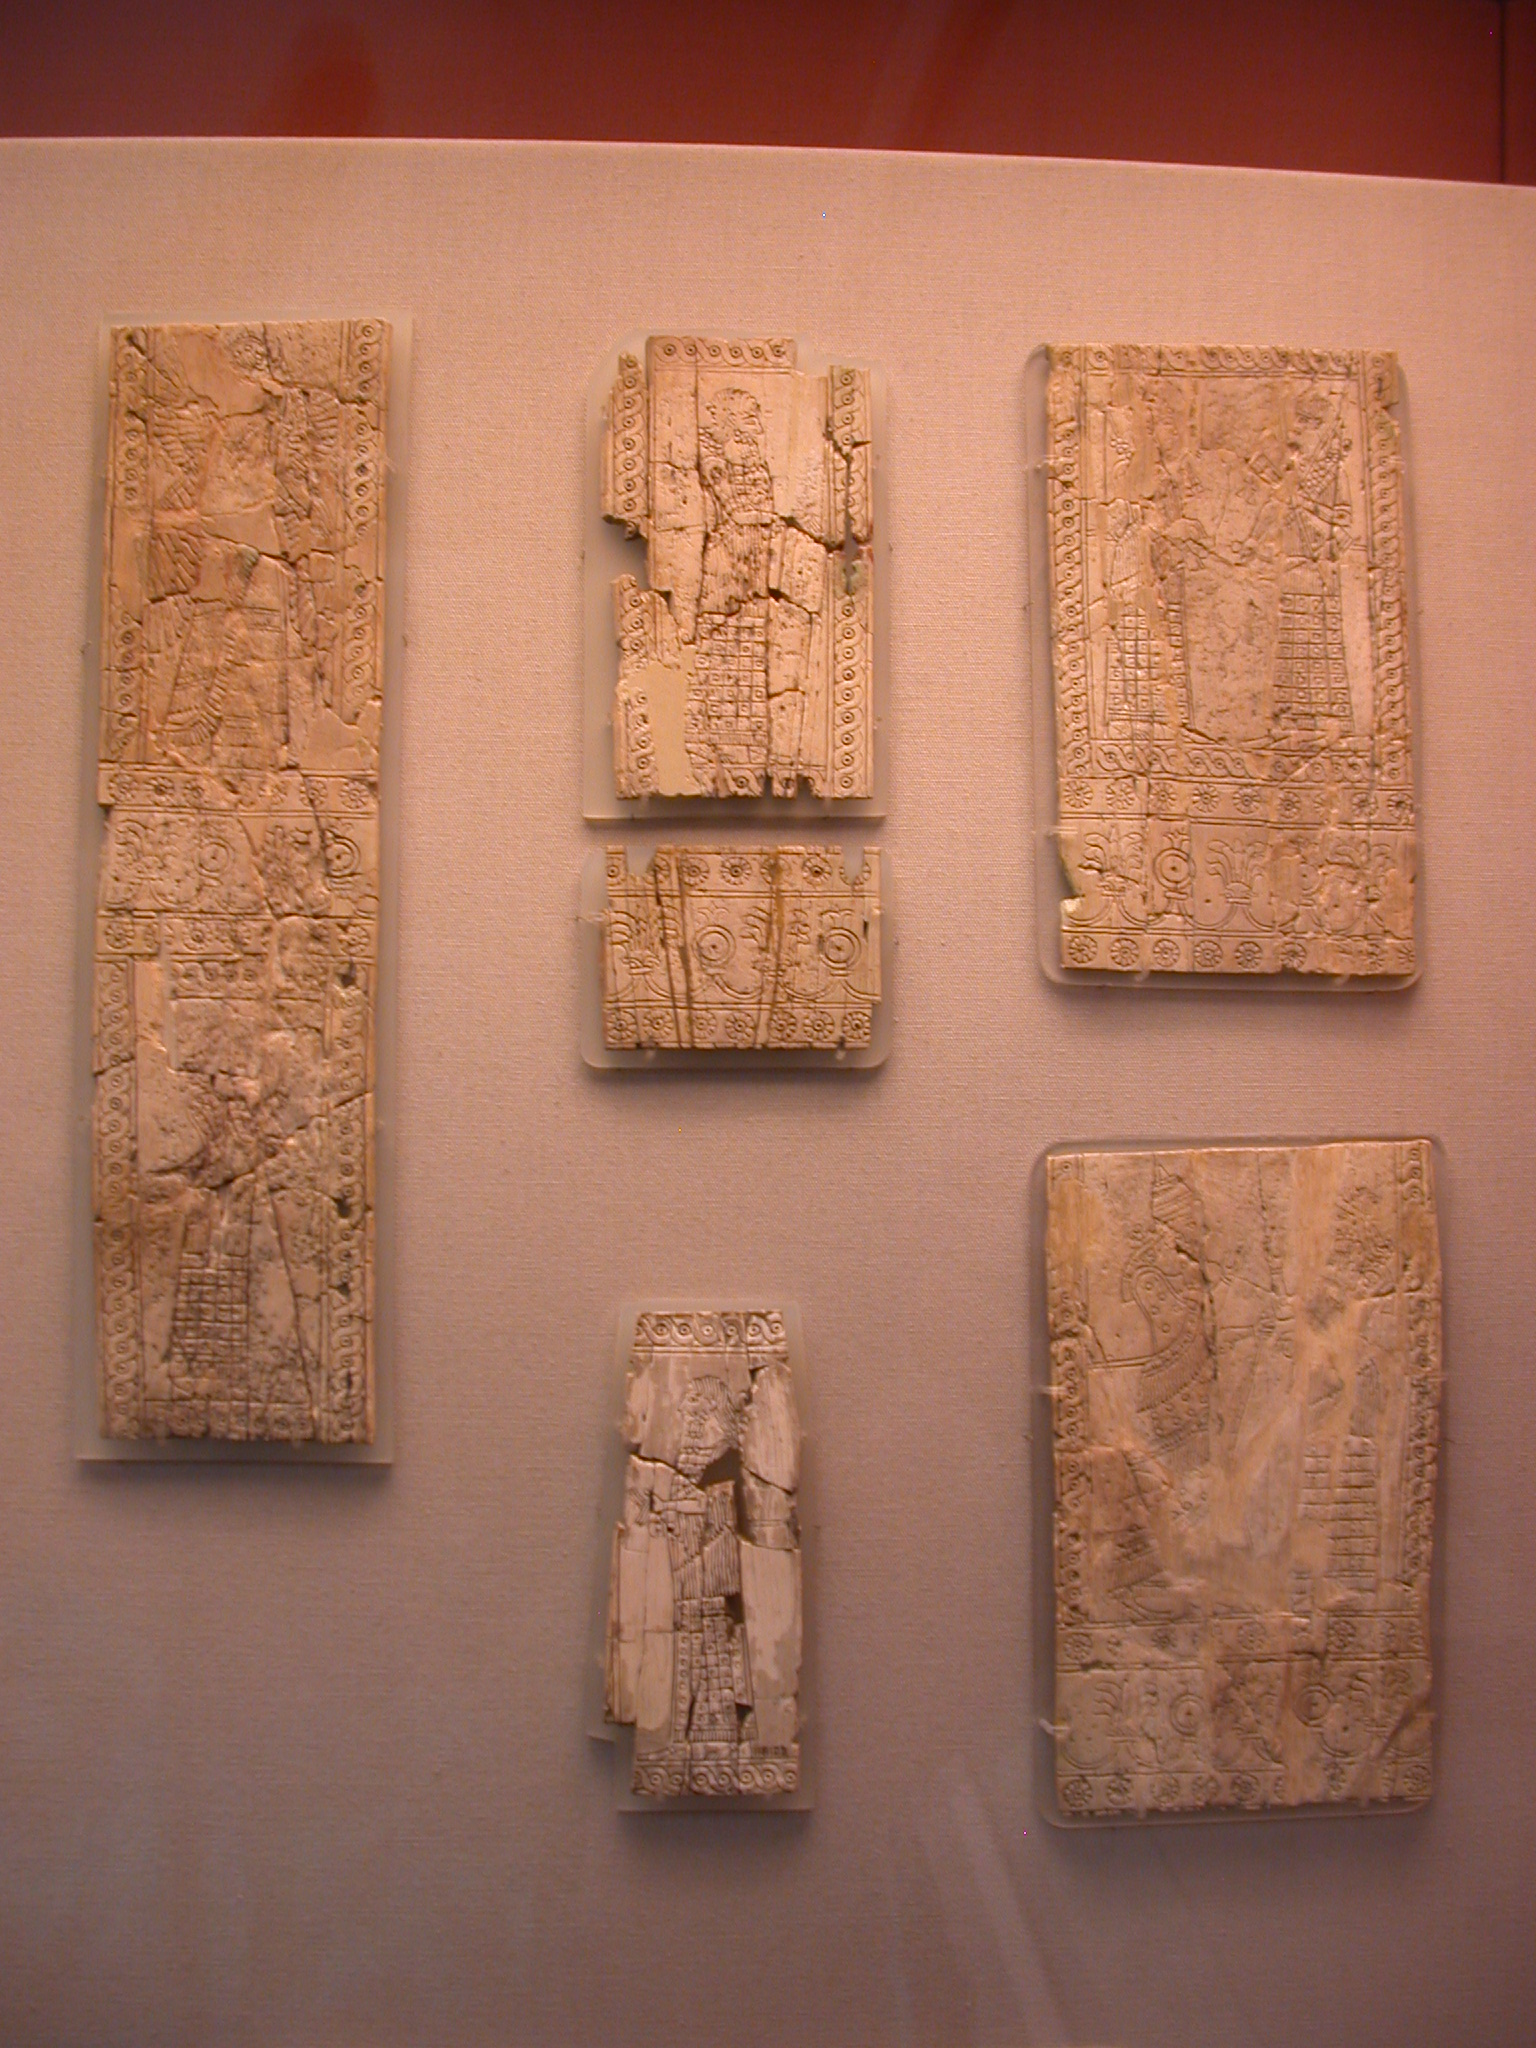 Panels Representing King, Officials, Guards, and Protective Spirits, Perhaps From Quiver, Ivory, About 730-710 BCE, Nimrud, Assyria, in British Museum, London, England